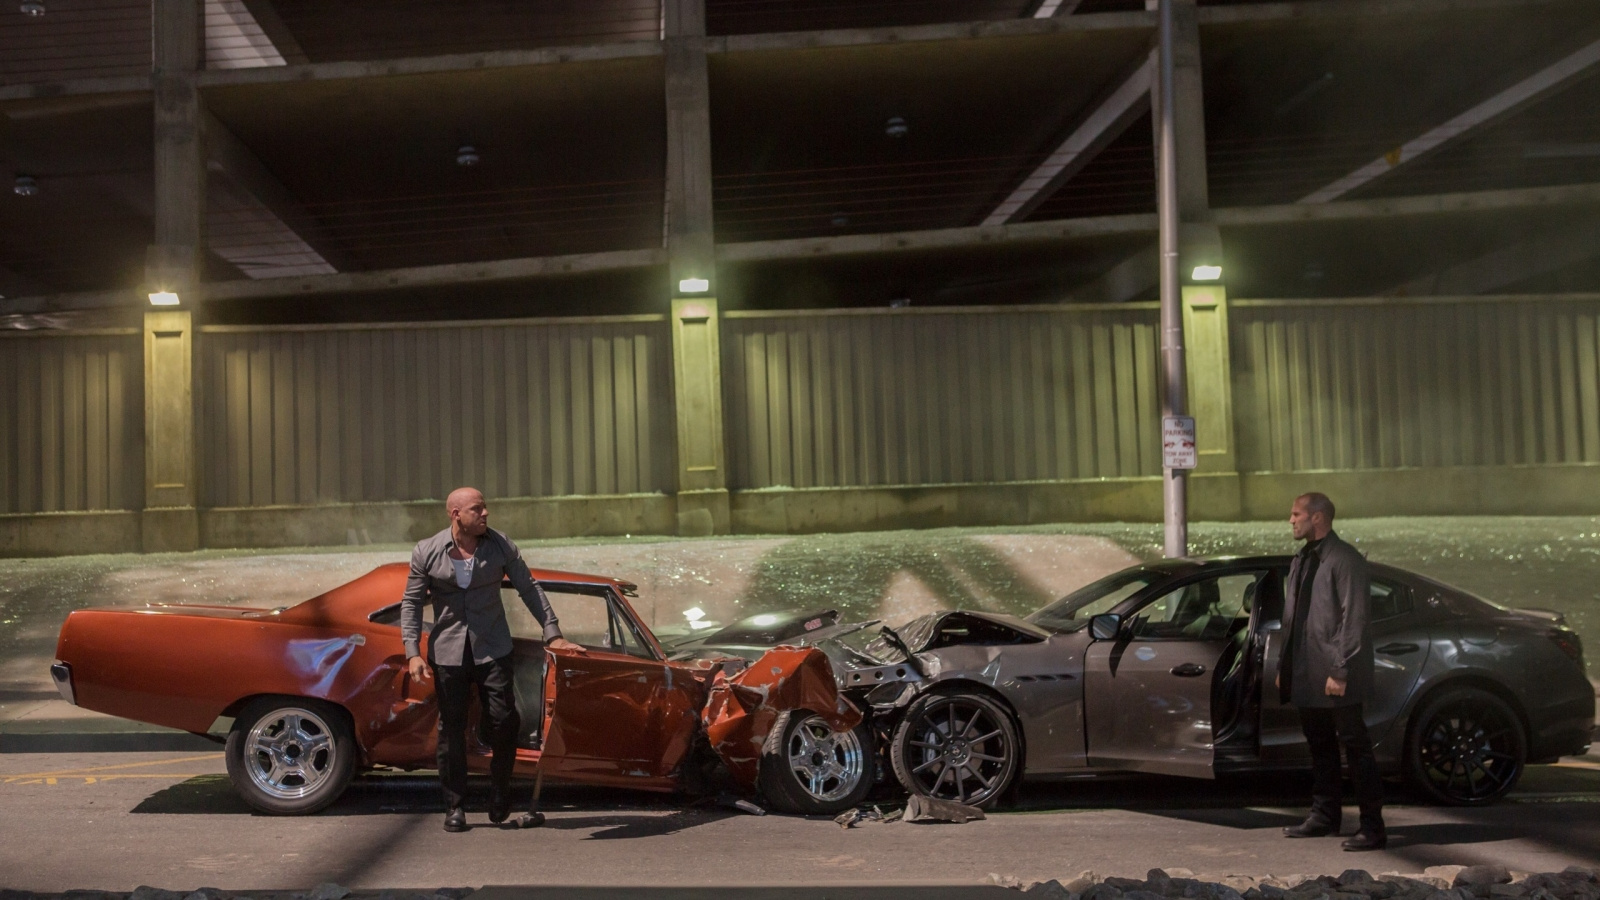 Fast And Furious 7 Movie Scene for 1600 x 900 HDTV resolution